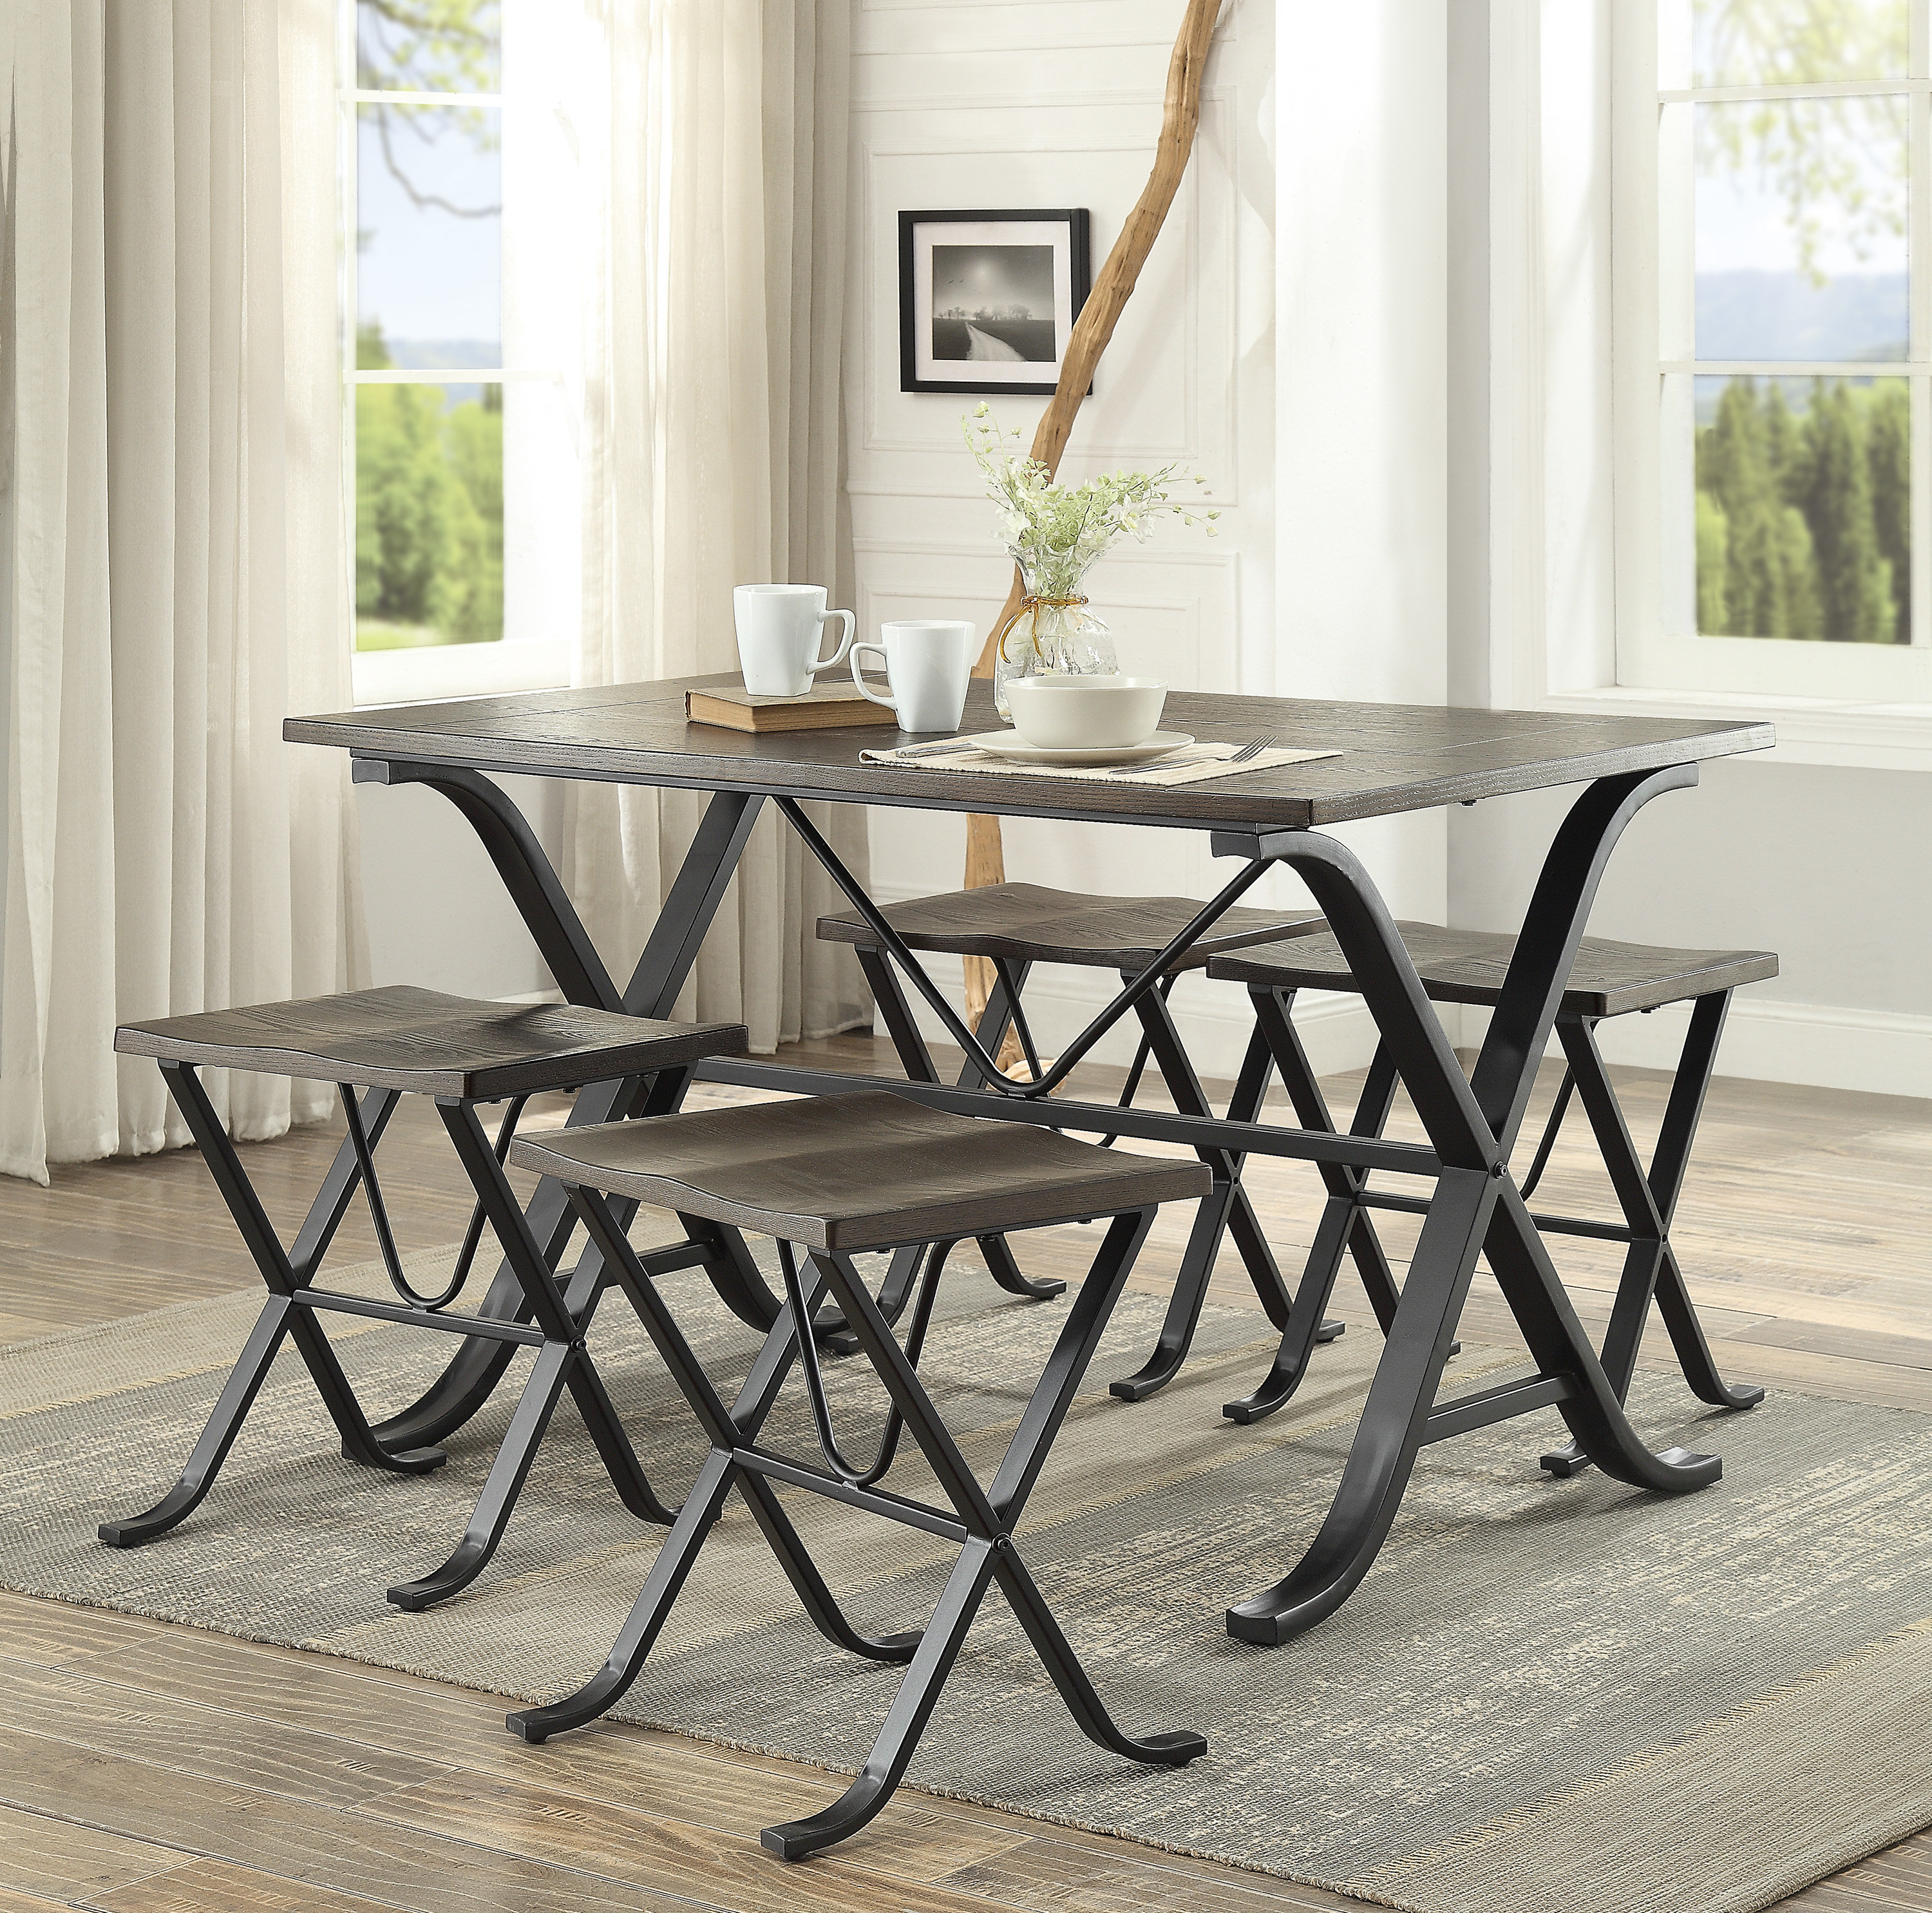 Wayfair With Most Up To Date Middleport 5 Piece Dining Sets (View 8 of 25)